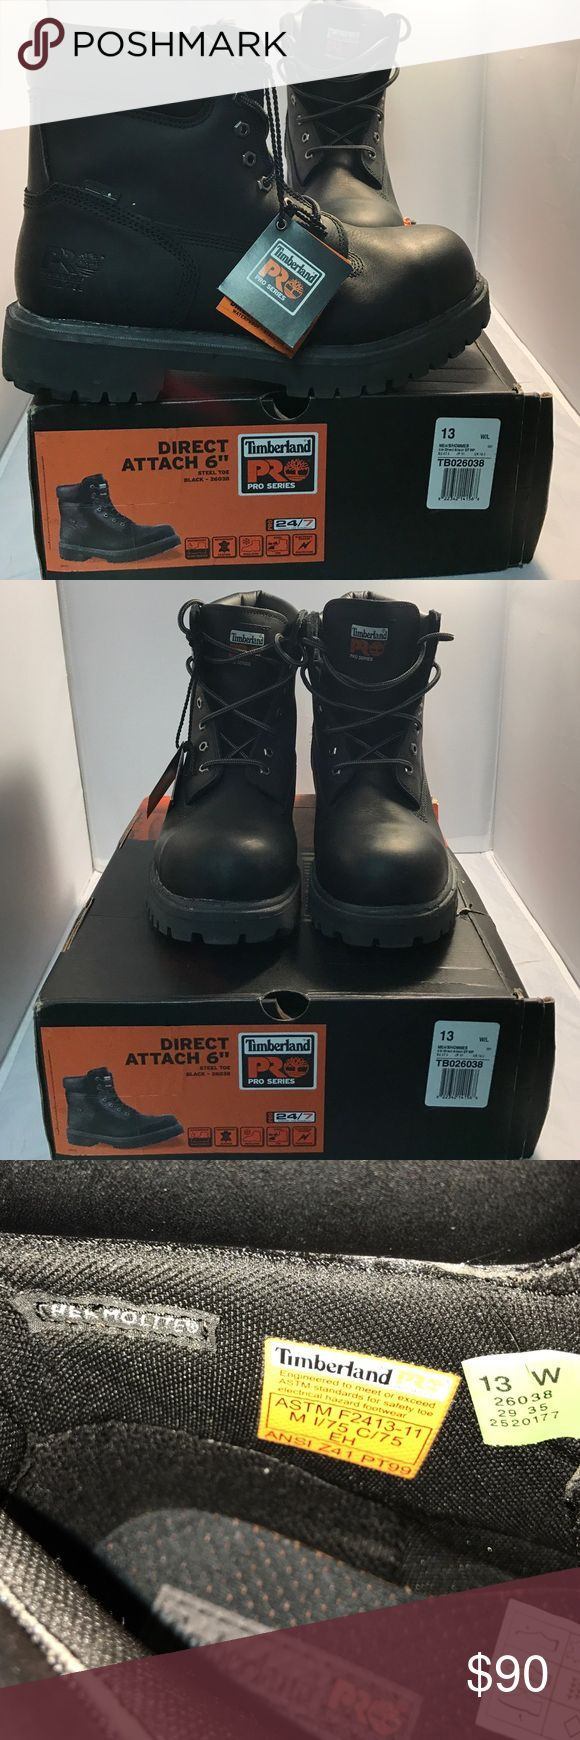 NWT Timberland Pro Series in black size 13 NWT and box Timberland Pro Series in black. Waterproof, insulated, steal toe and electrical hazard protection. Retails over $129. REASONABLE offers will be considered. Timberland Shoes Boots